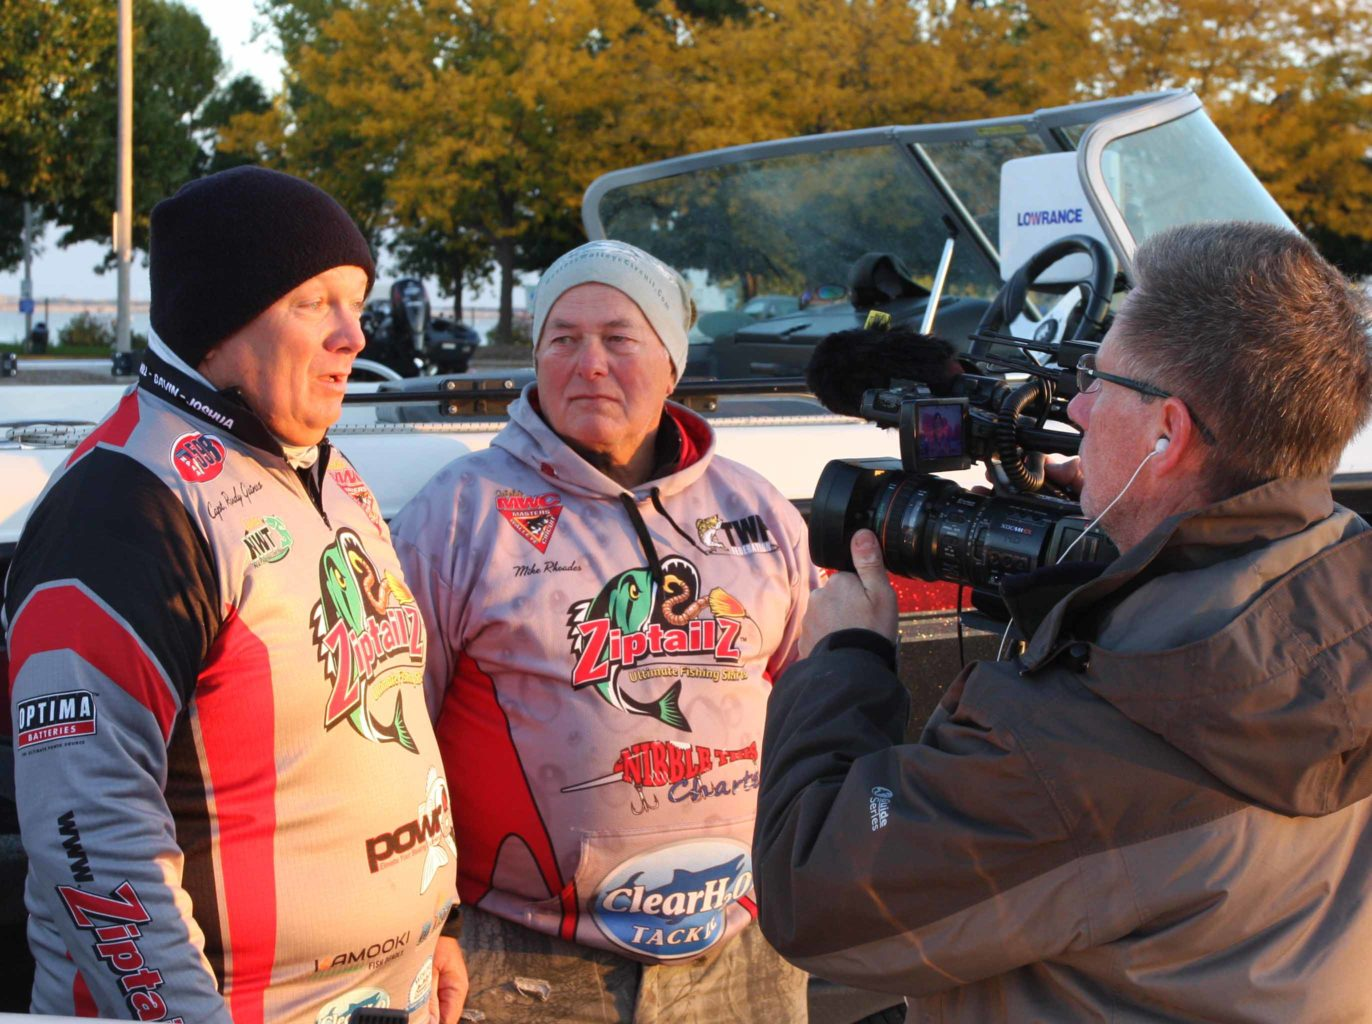 Leaders Randall Gaines and Mike Rhoades discuss day-three strategies in an interview for Federation Angler Television.